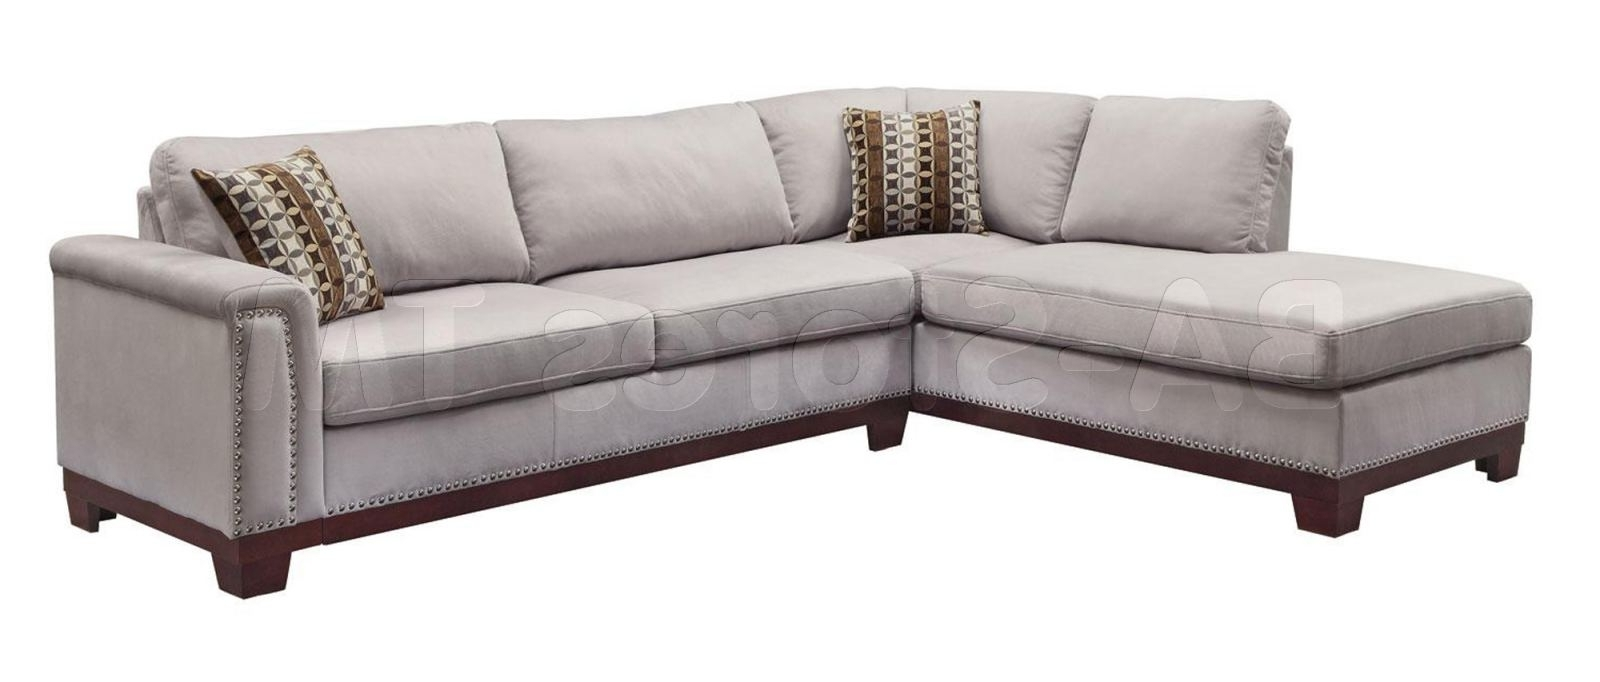 Sectional Sofas With Nailhead Trim Pertaining To Best And Newest Nailhead Trim Sectional Sofa #6 Click To Enlarge (View 15 of 20)